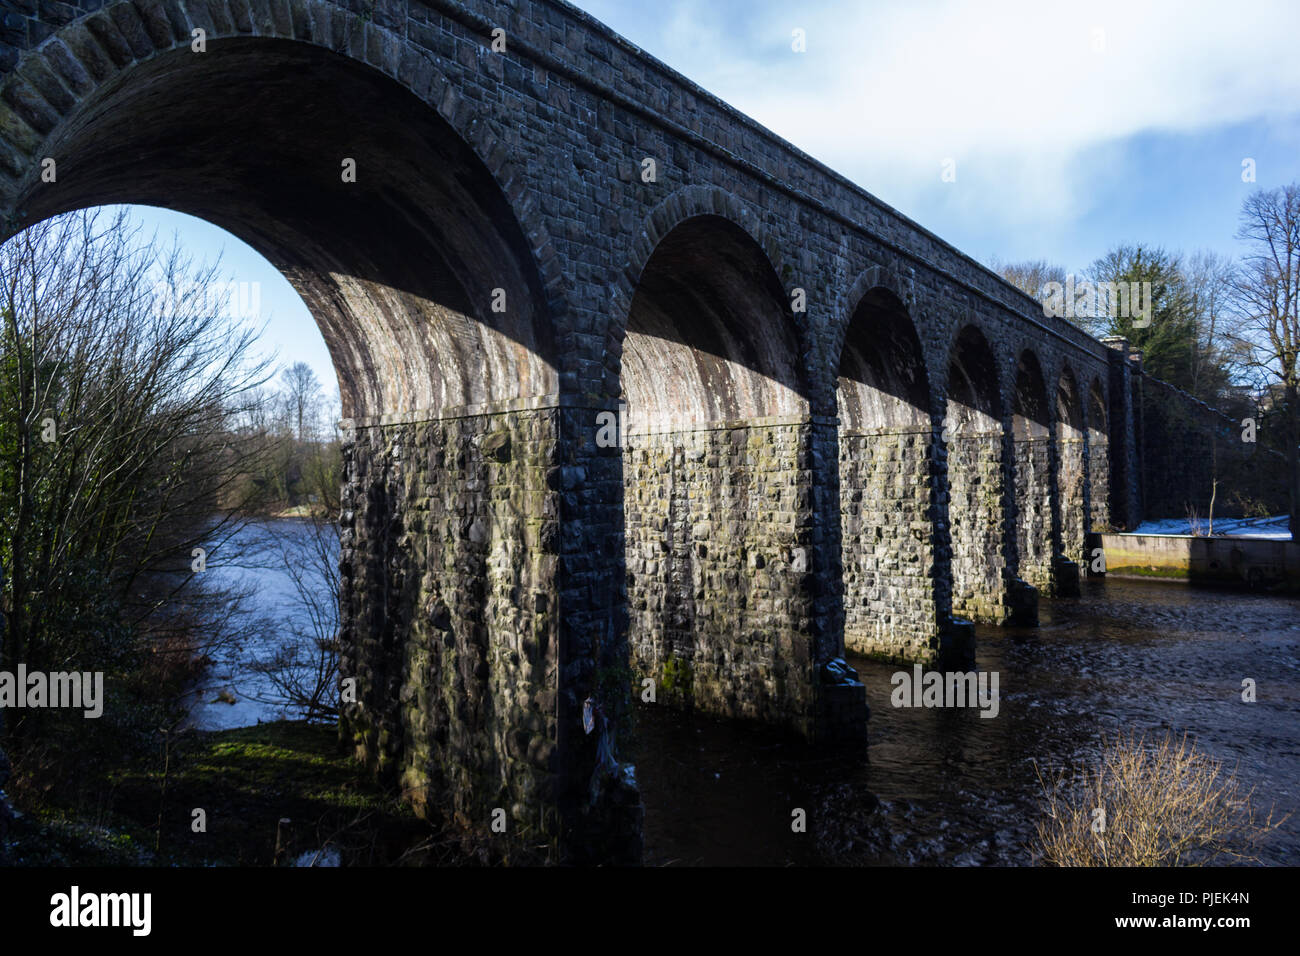 Disused train Viaduct over River Maine in Randalstown, County Antrim, N.Ireland. - Stock Image